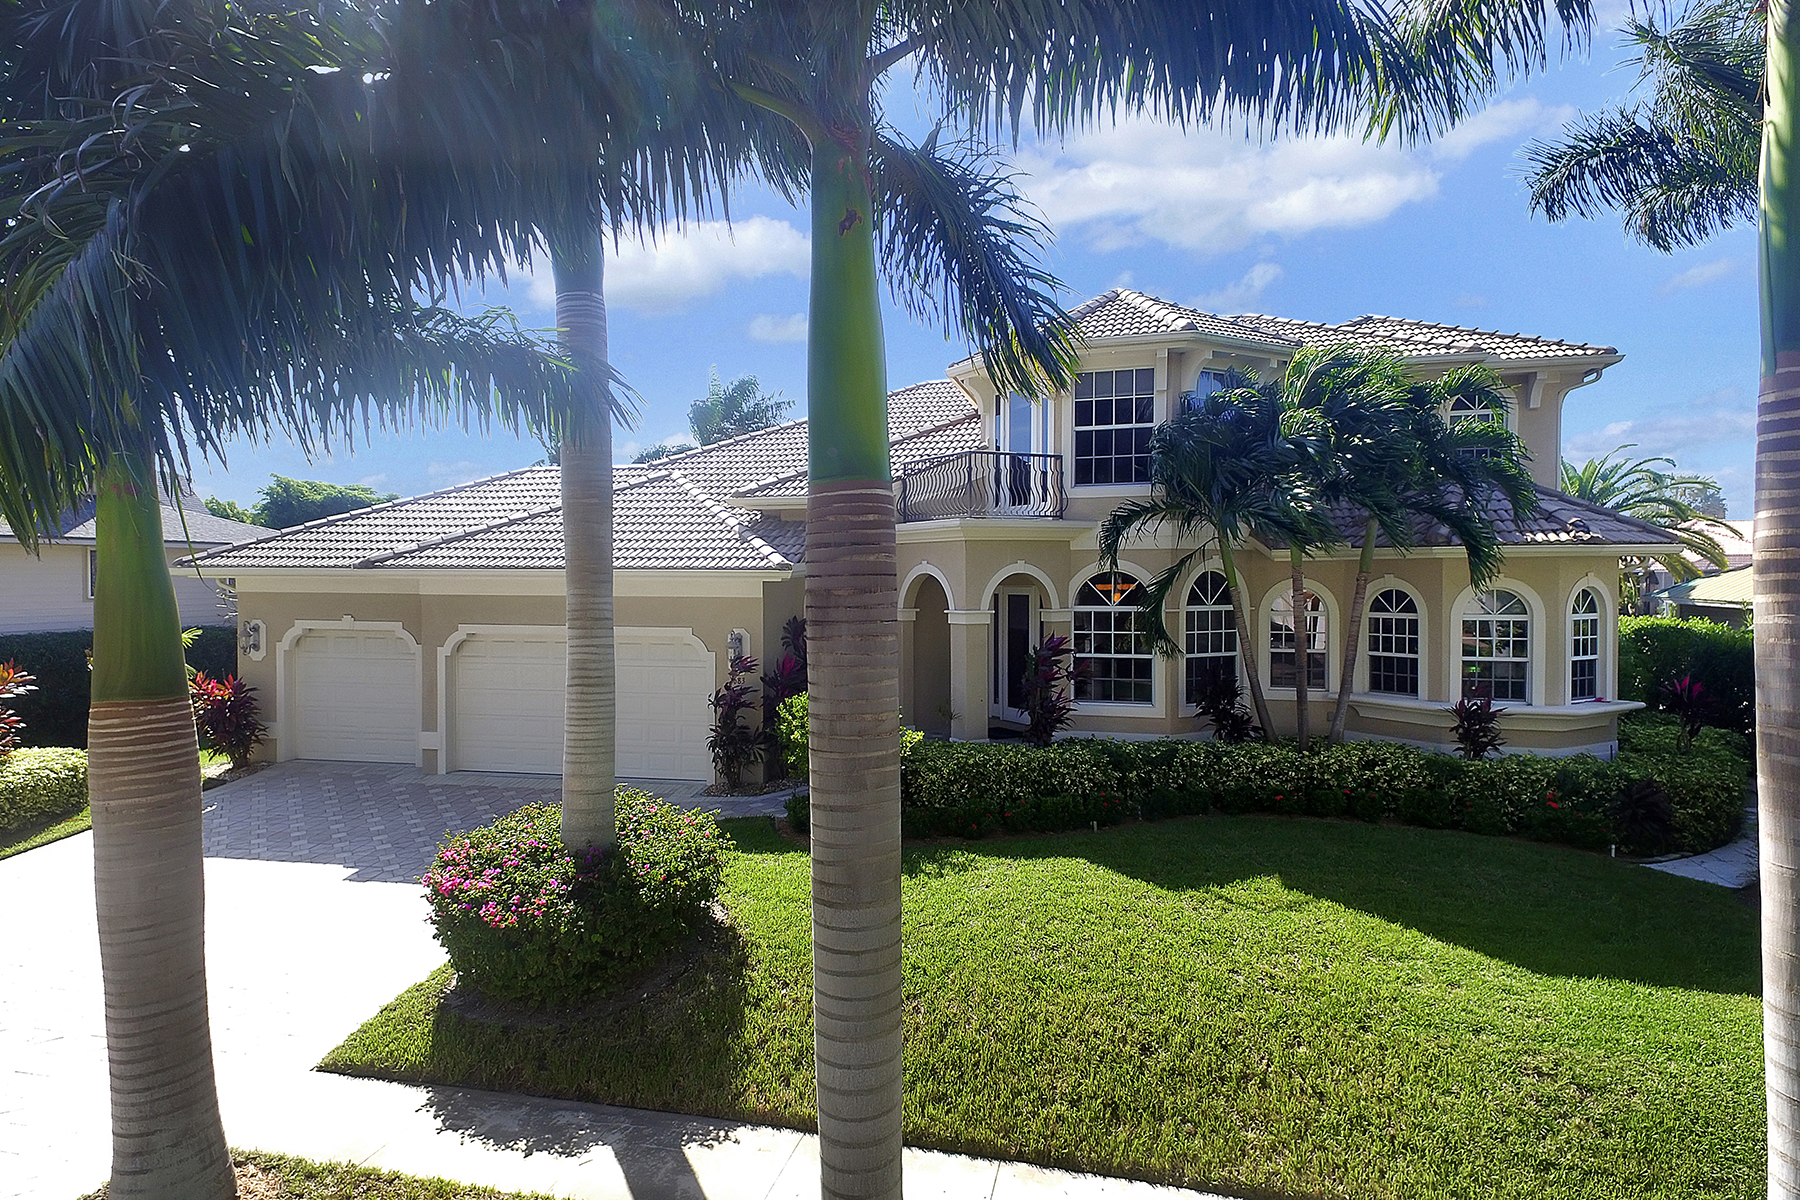 Single Family Home for Sale at MARCO ISLAND - SOLANA 683 Solana Ct Marco Island, Florida 34145 United States